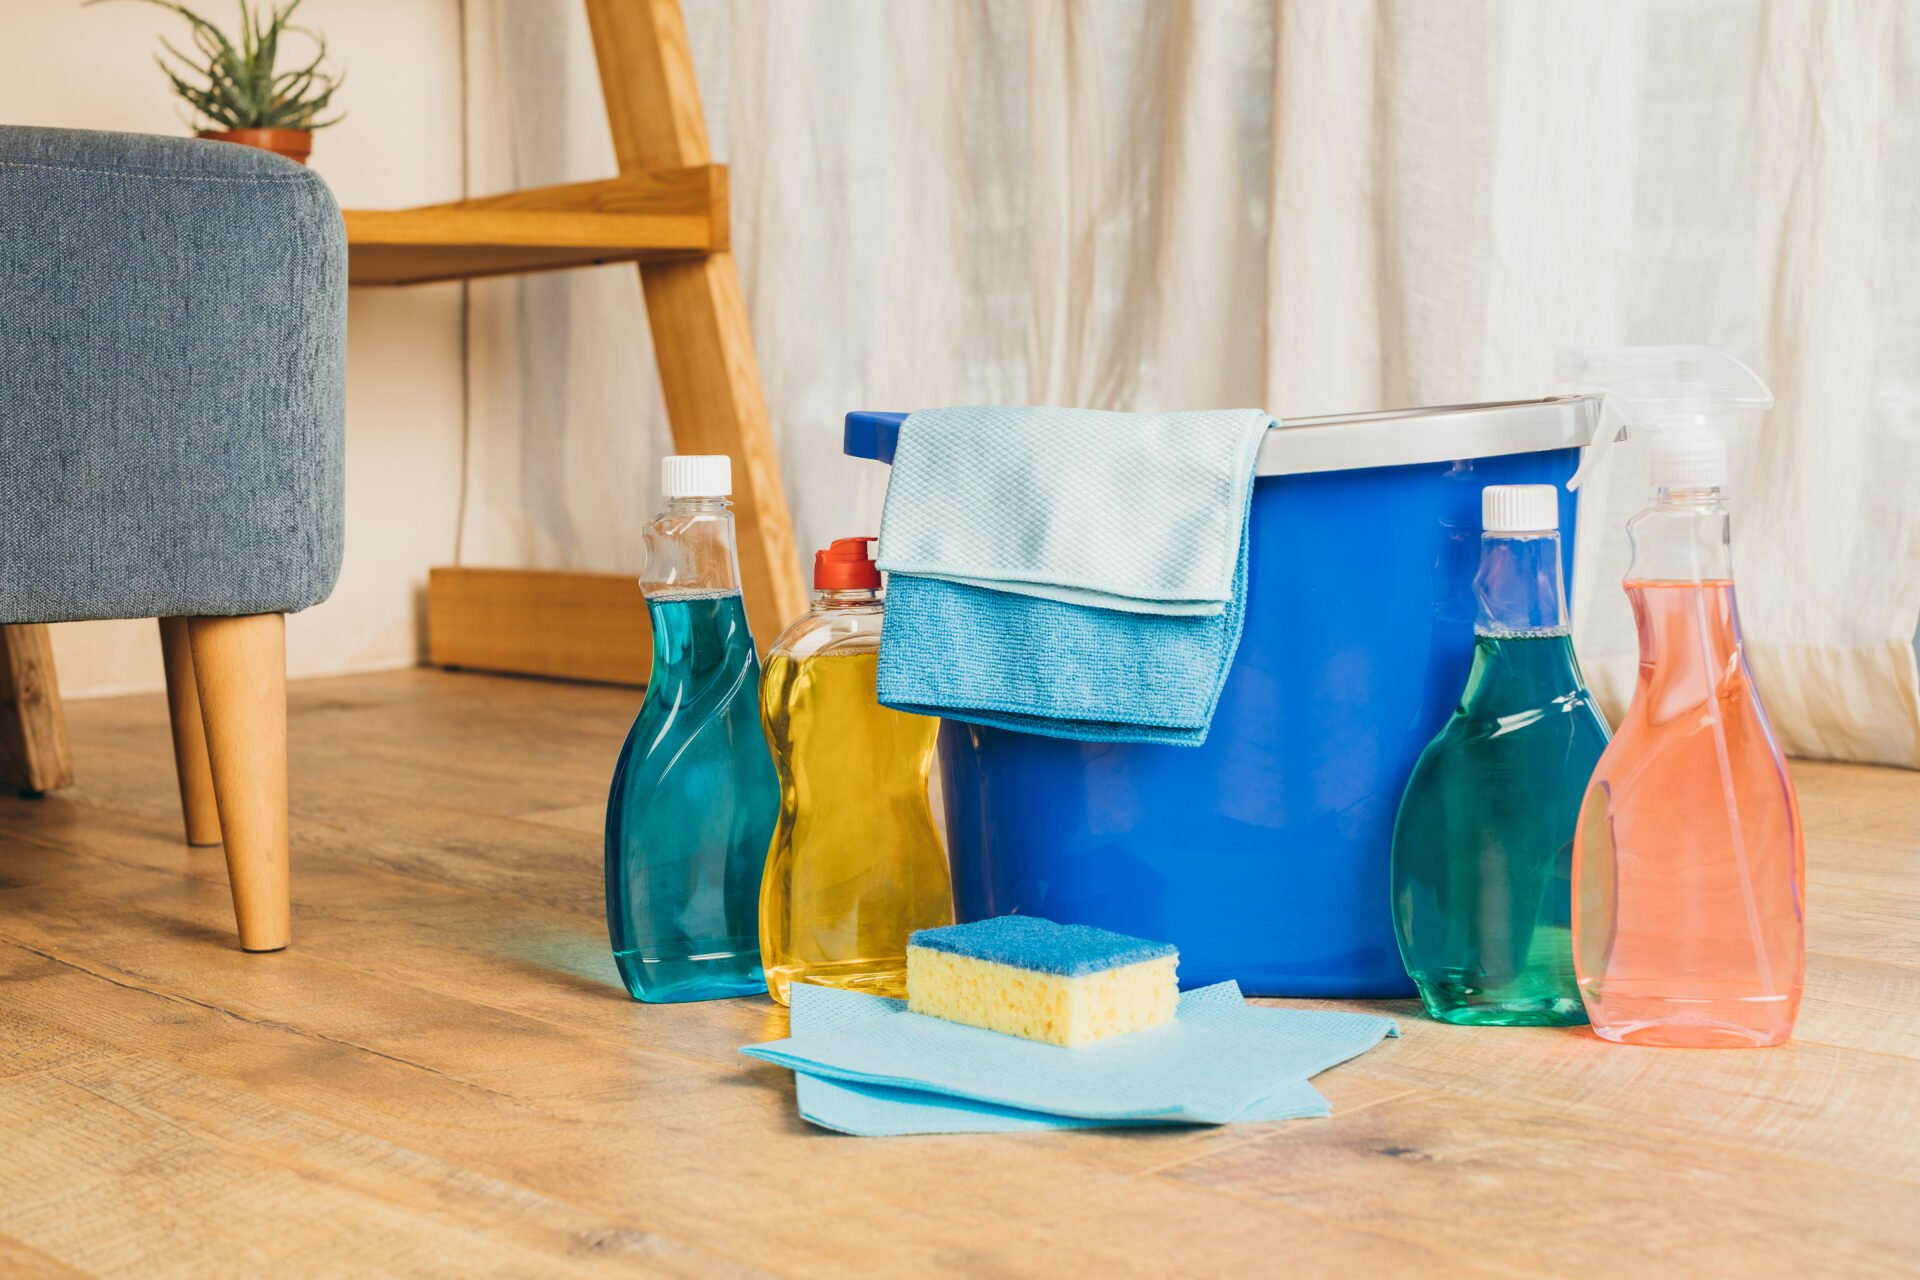 Cleaning products with Quats